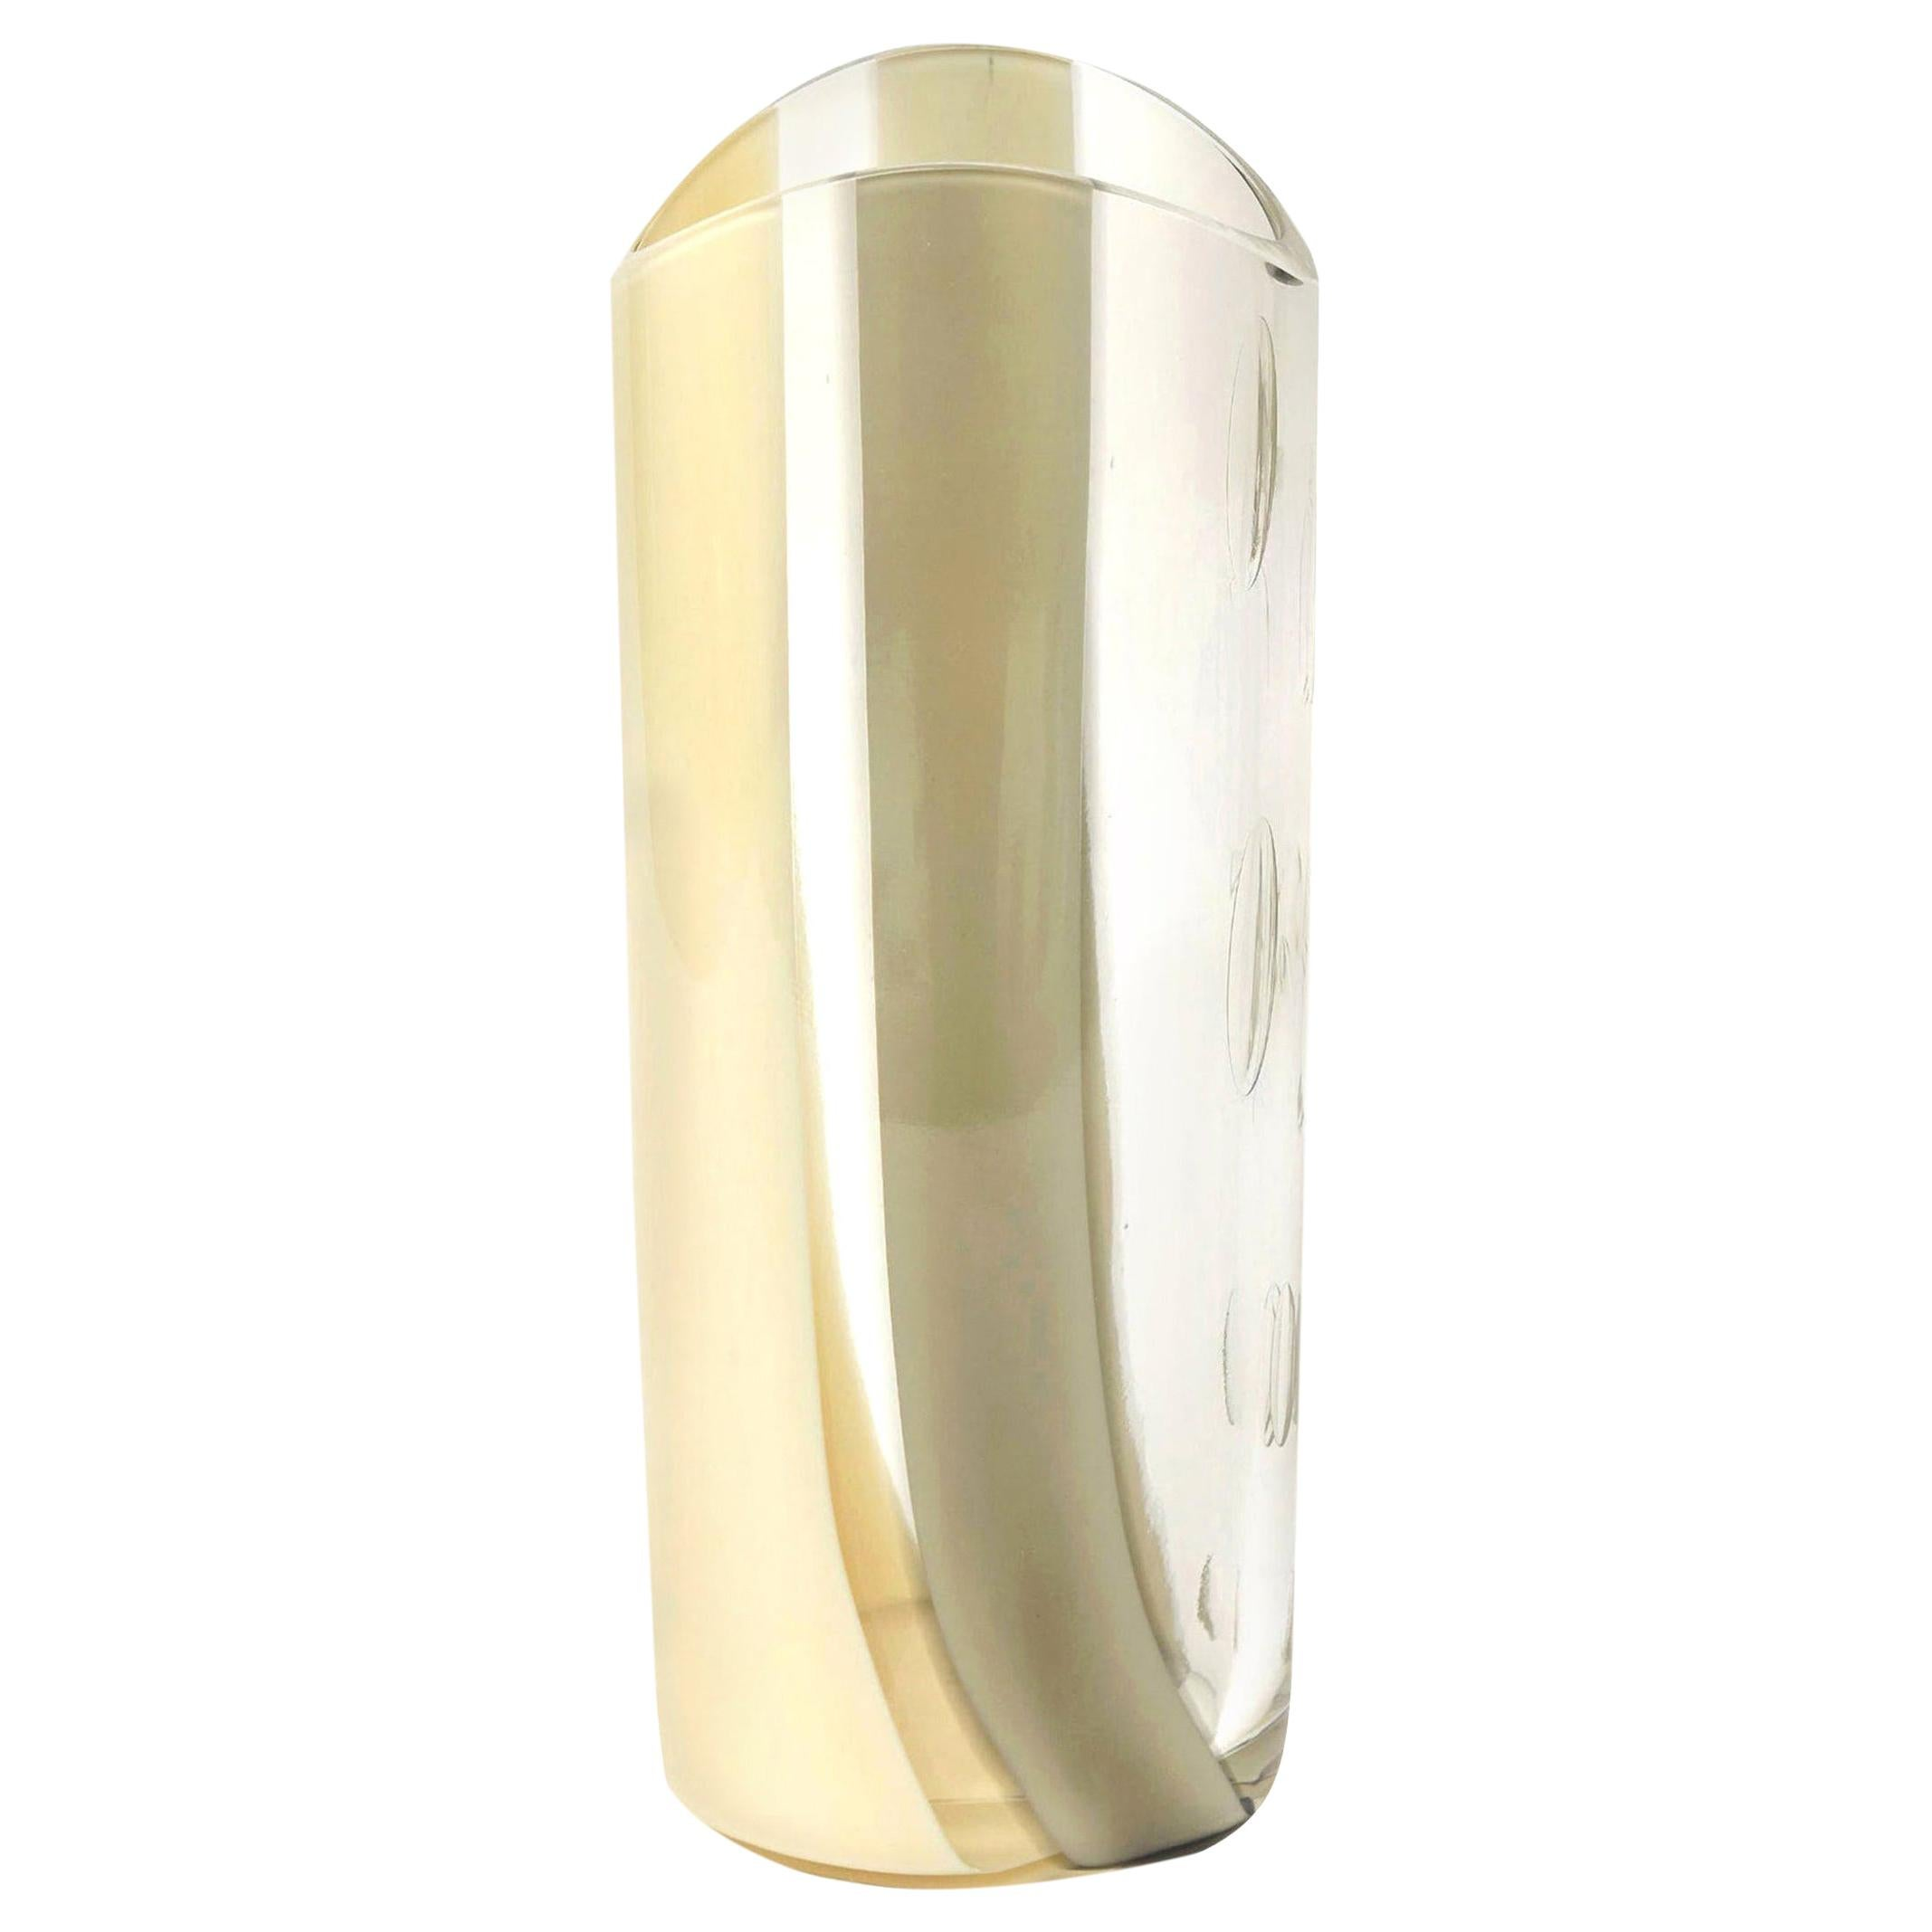 Seguso Vetri d'Arte Murano Abstract Glass Vase